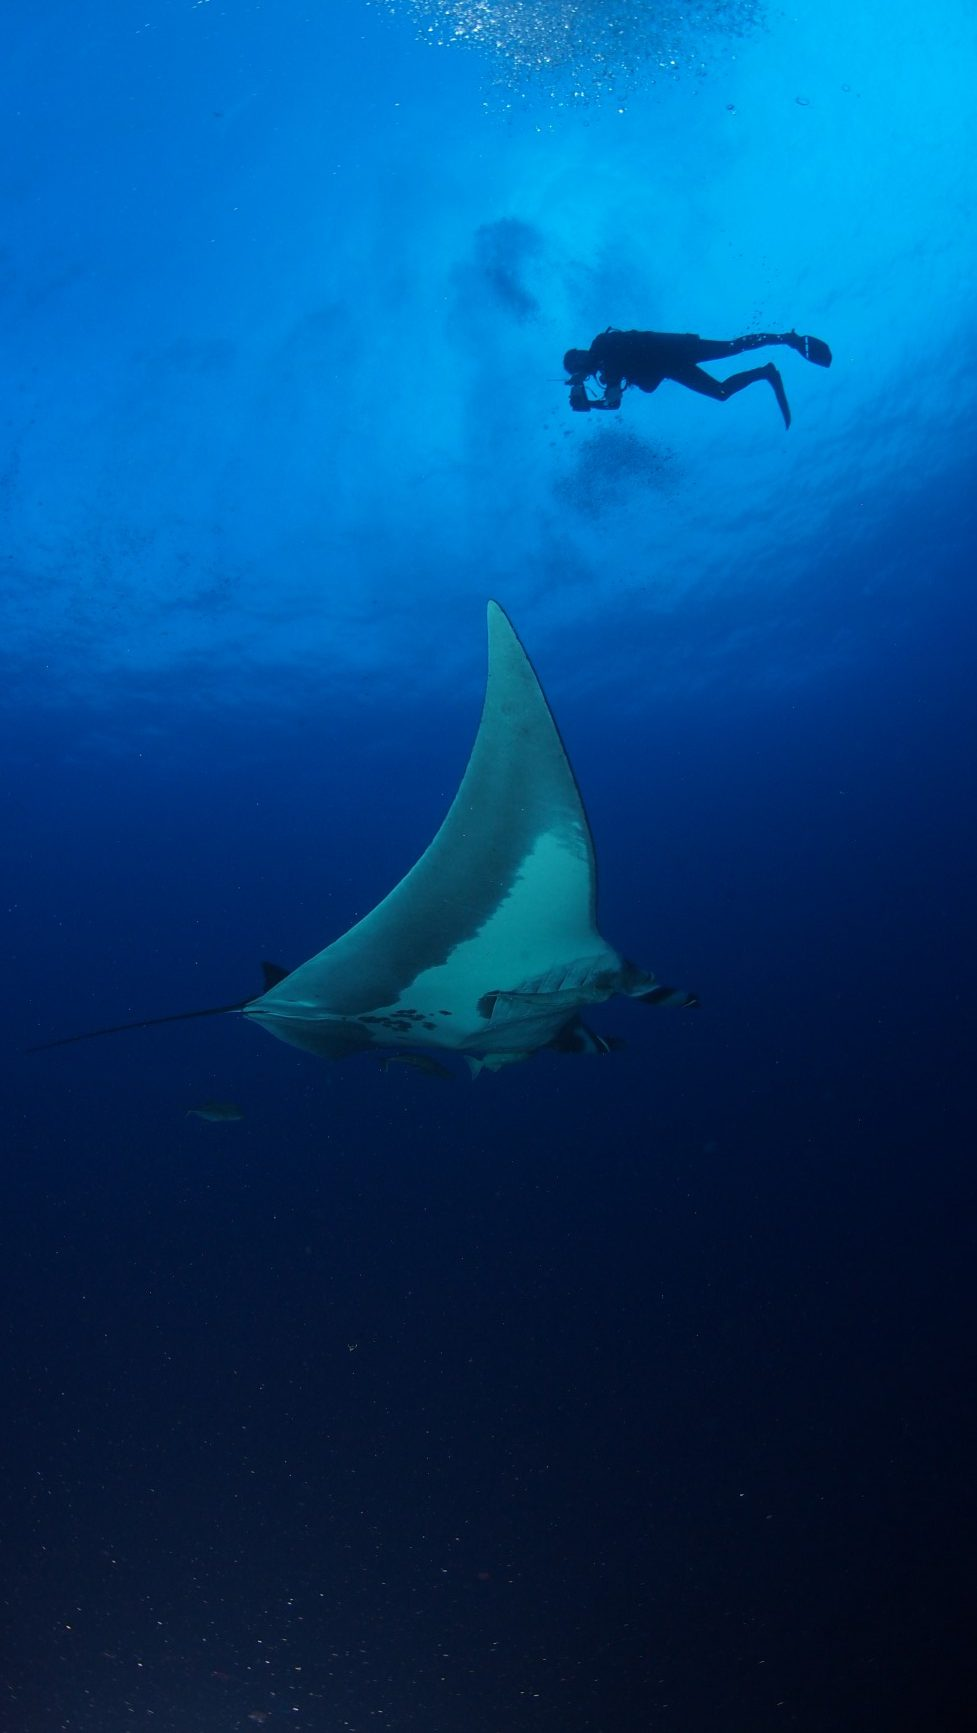 scuba diver angles camera down to watch manta ray pass